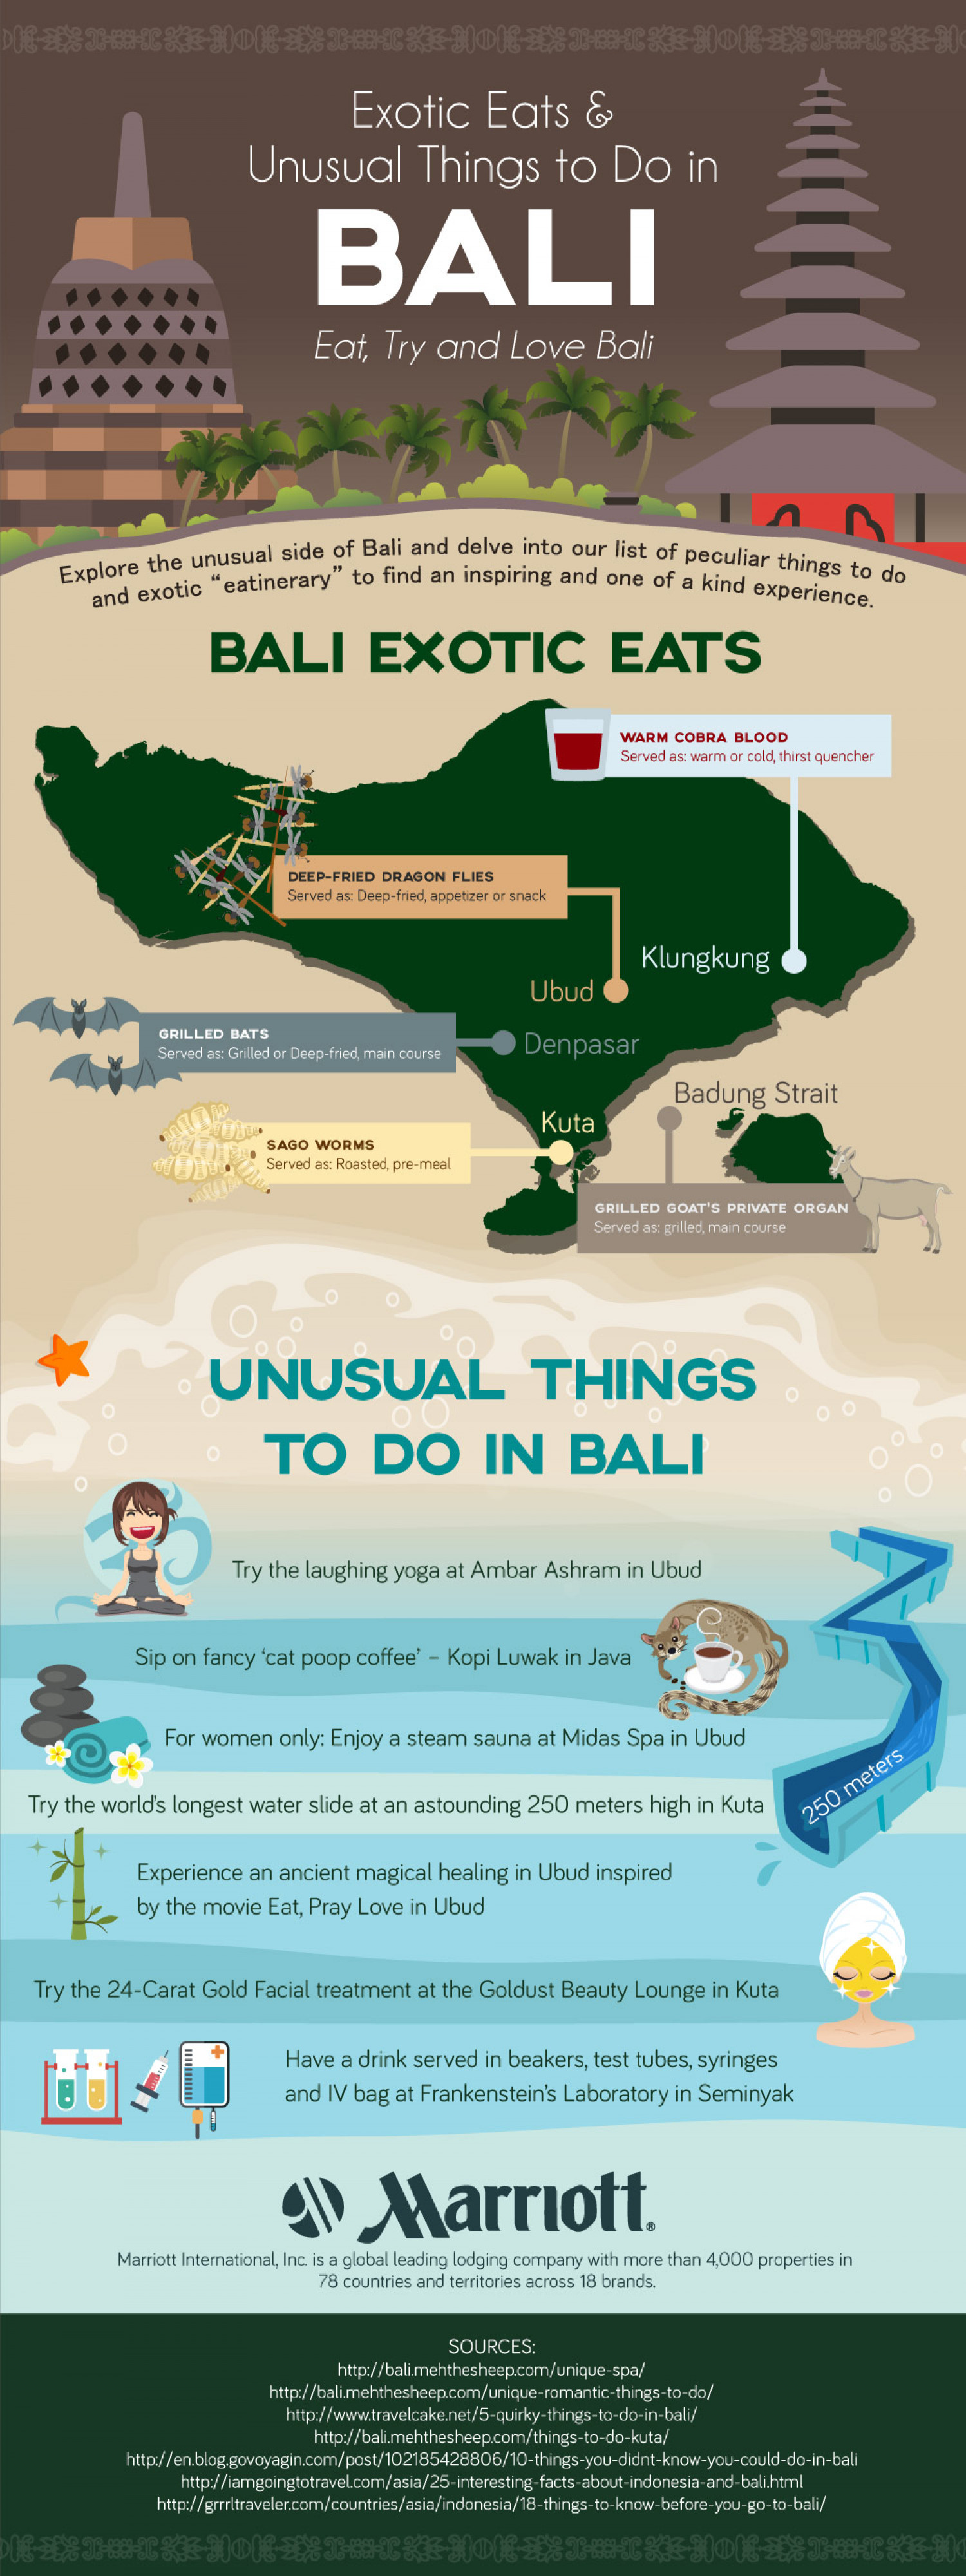 Discover Exotic Foods & Unusual Things to Do in Bali Infographic